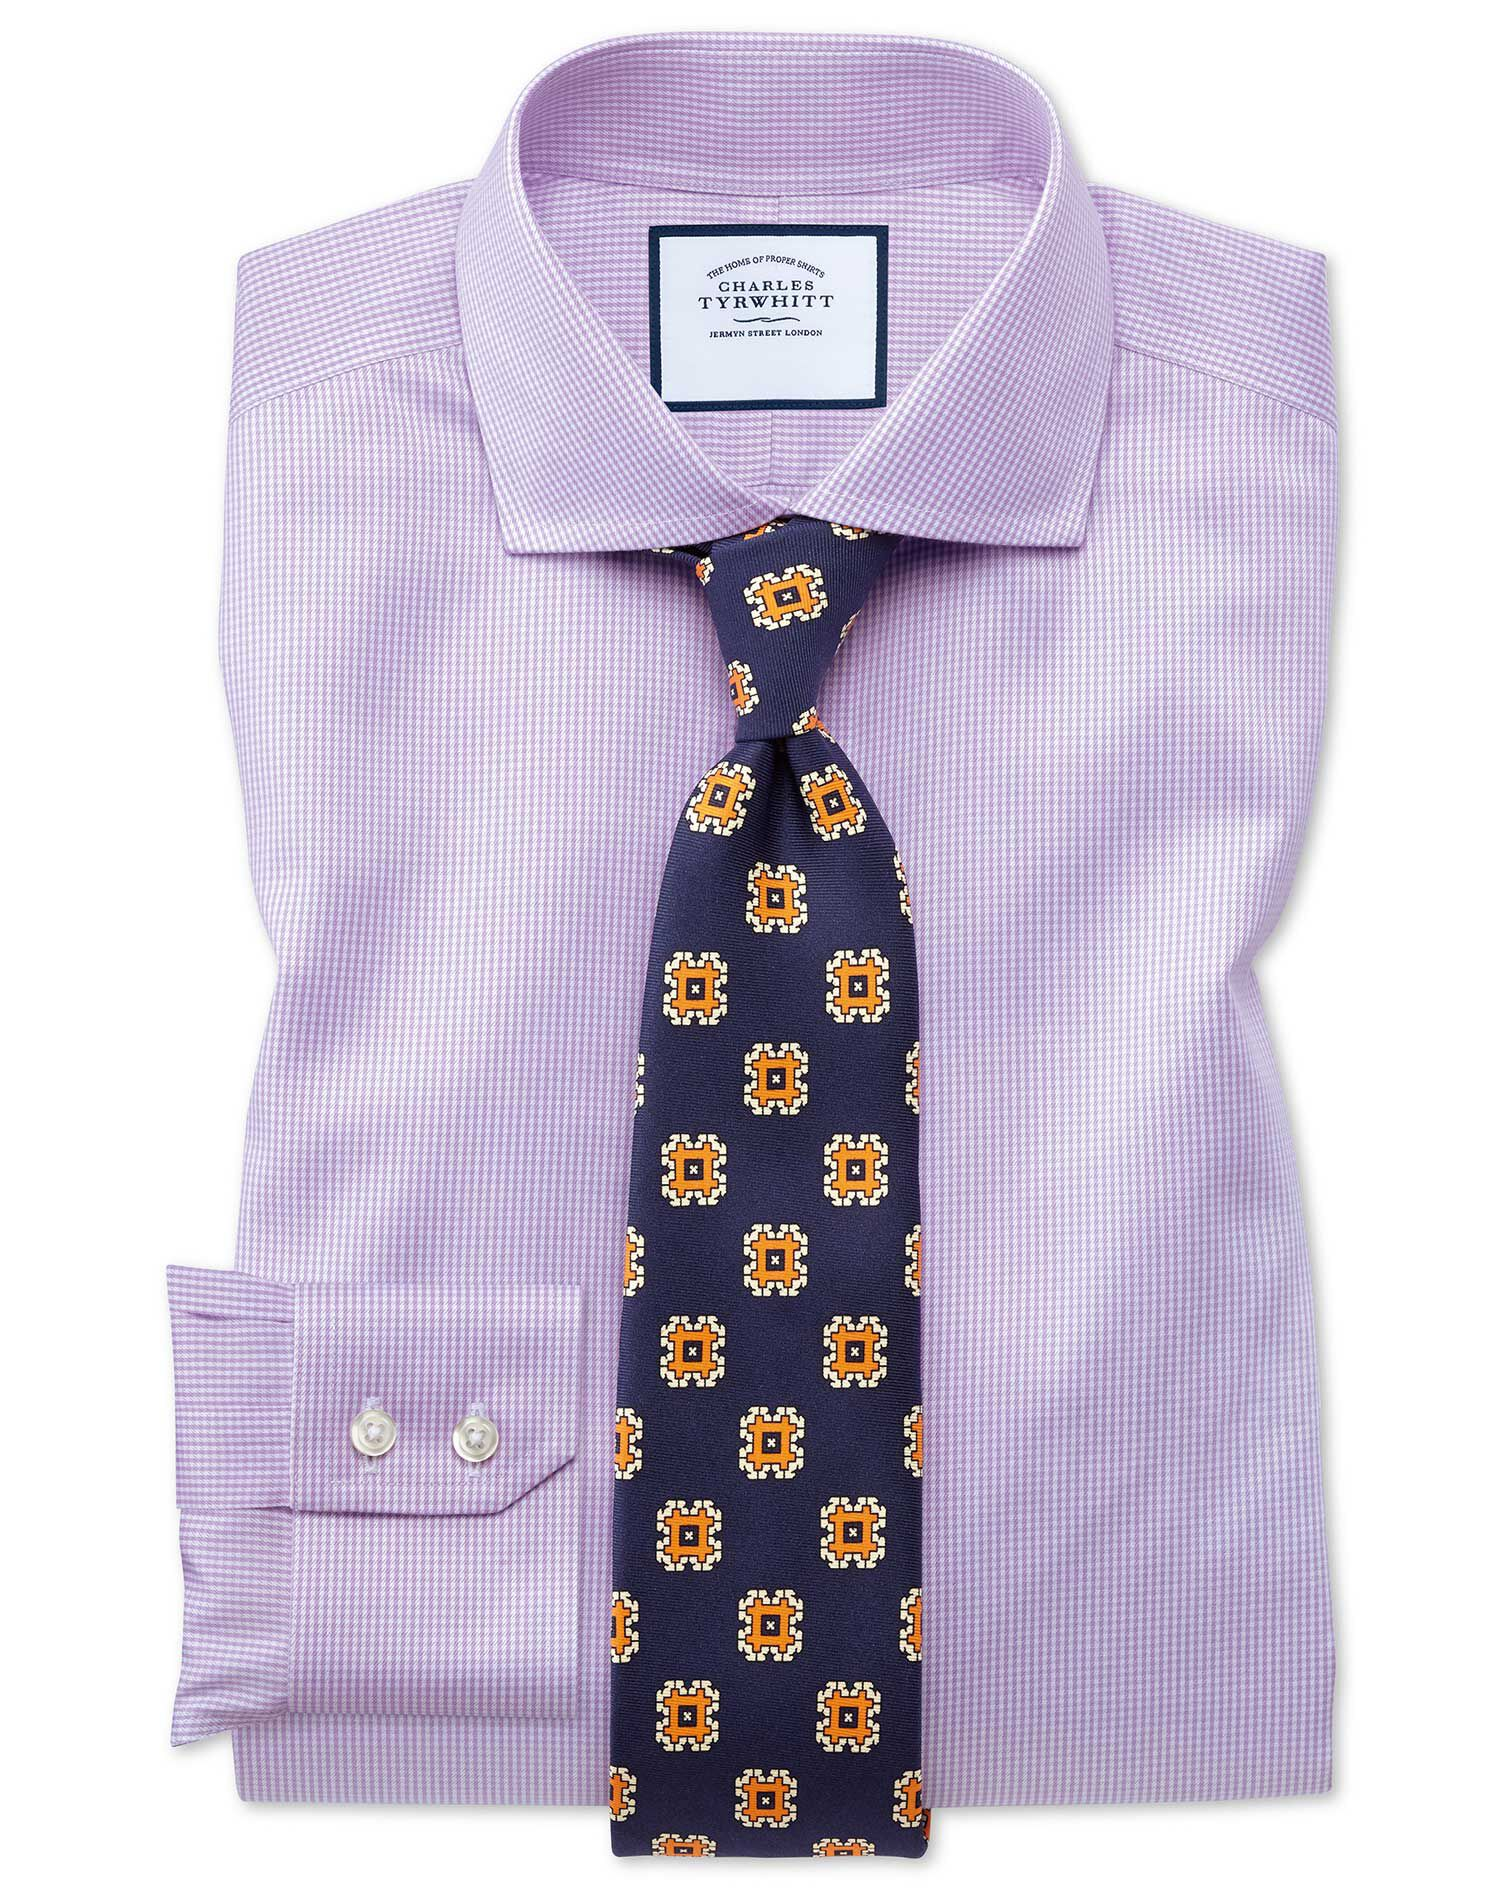 Slim Fit Cutaway Collar Non-Iron Puppytooth Lilac Cotton Formal Shirt Double Cuff Size 17.5/36 by Ch